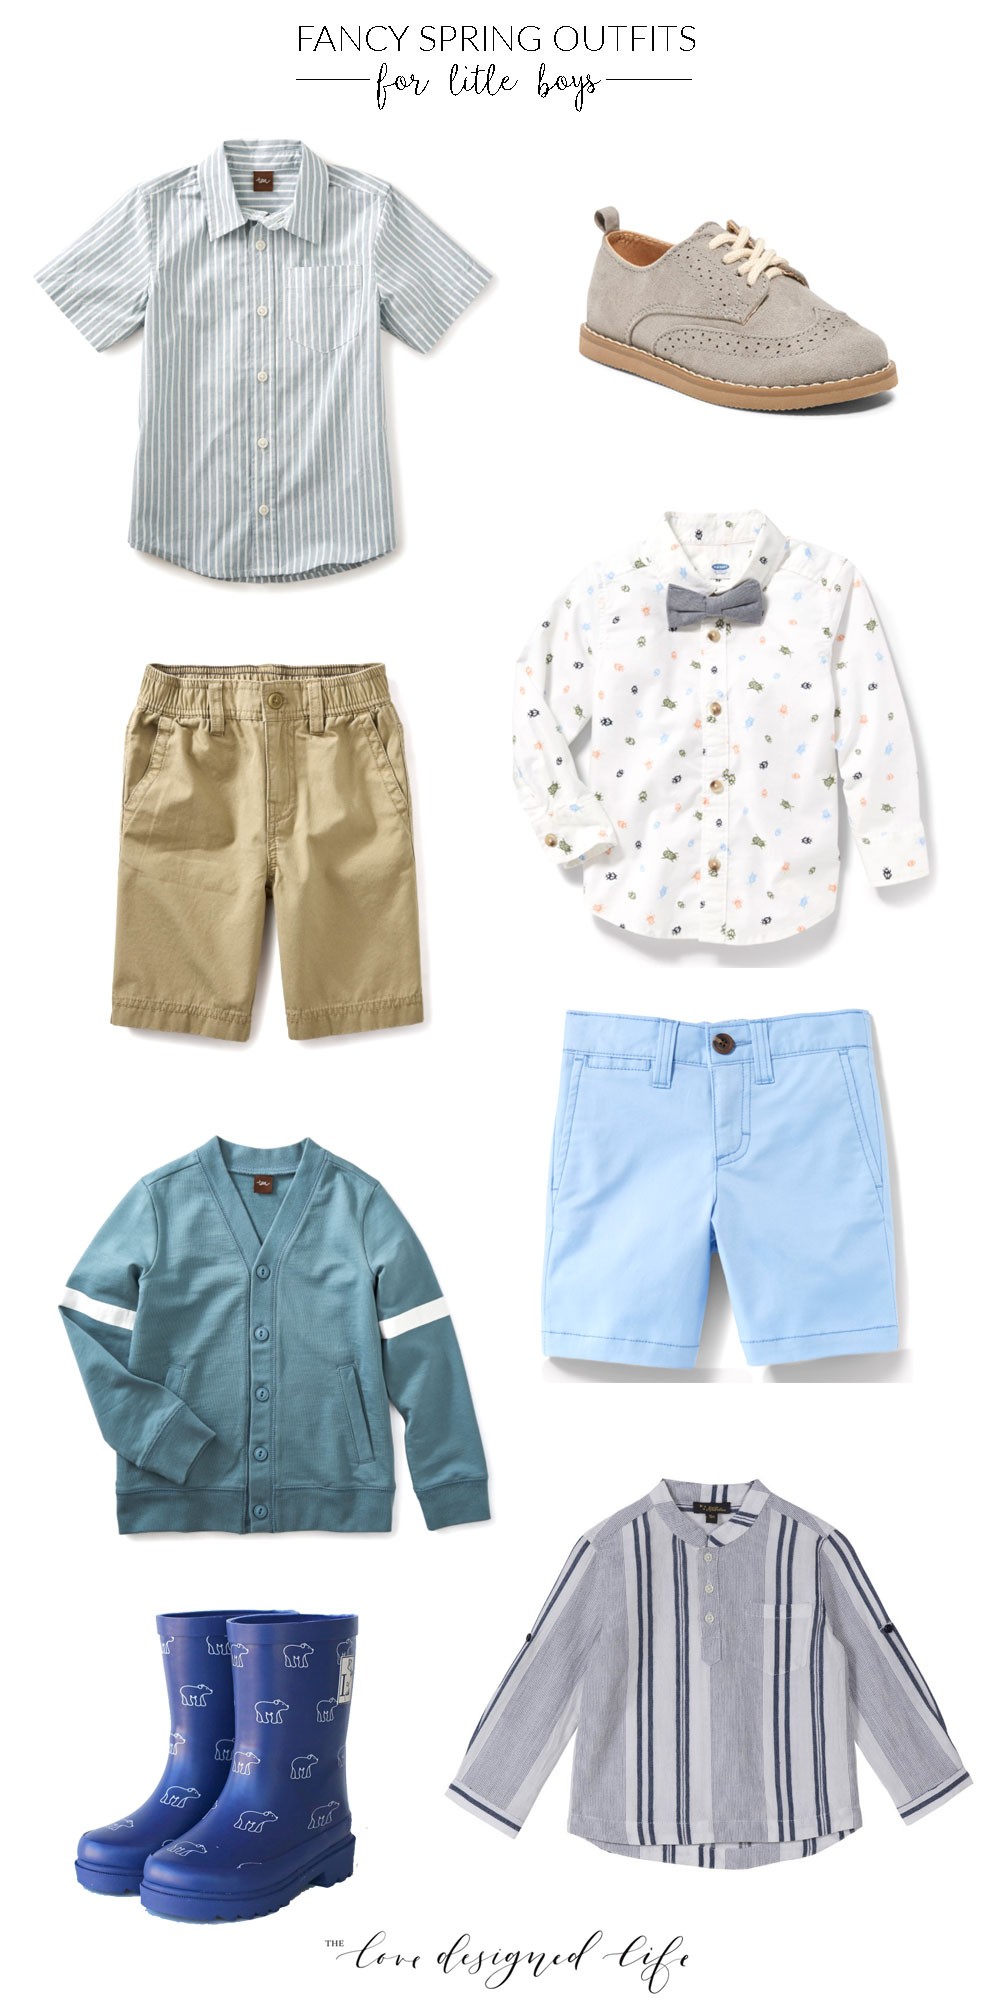 the cutest little outfits for dapper little boys! | thelovedesignedlife.com #easteroutfits #boysoutfits